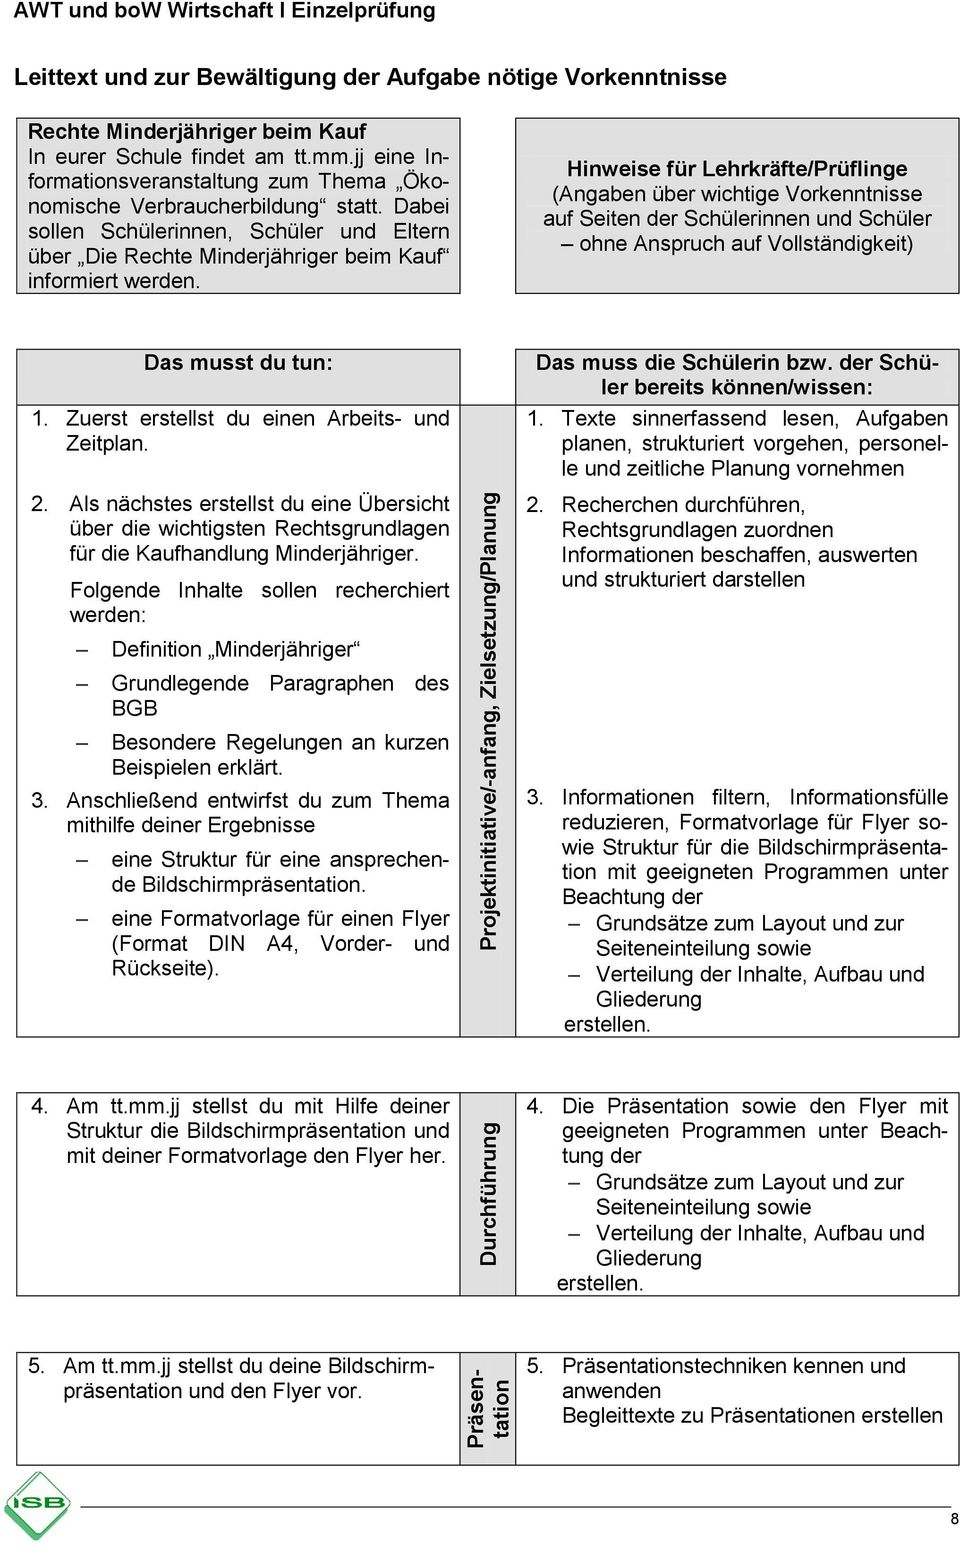 Großzügig Grundlegende Testplanvorlage Ideen - Entry Level Resume ...